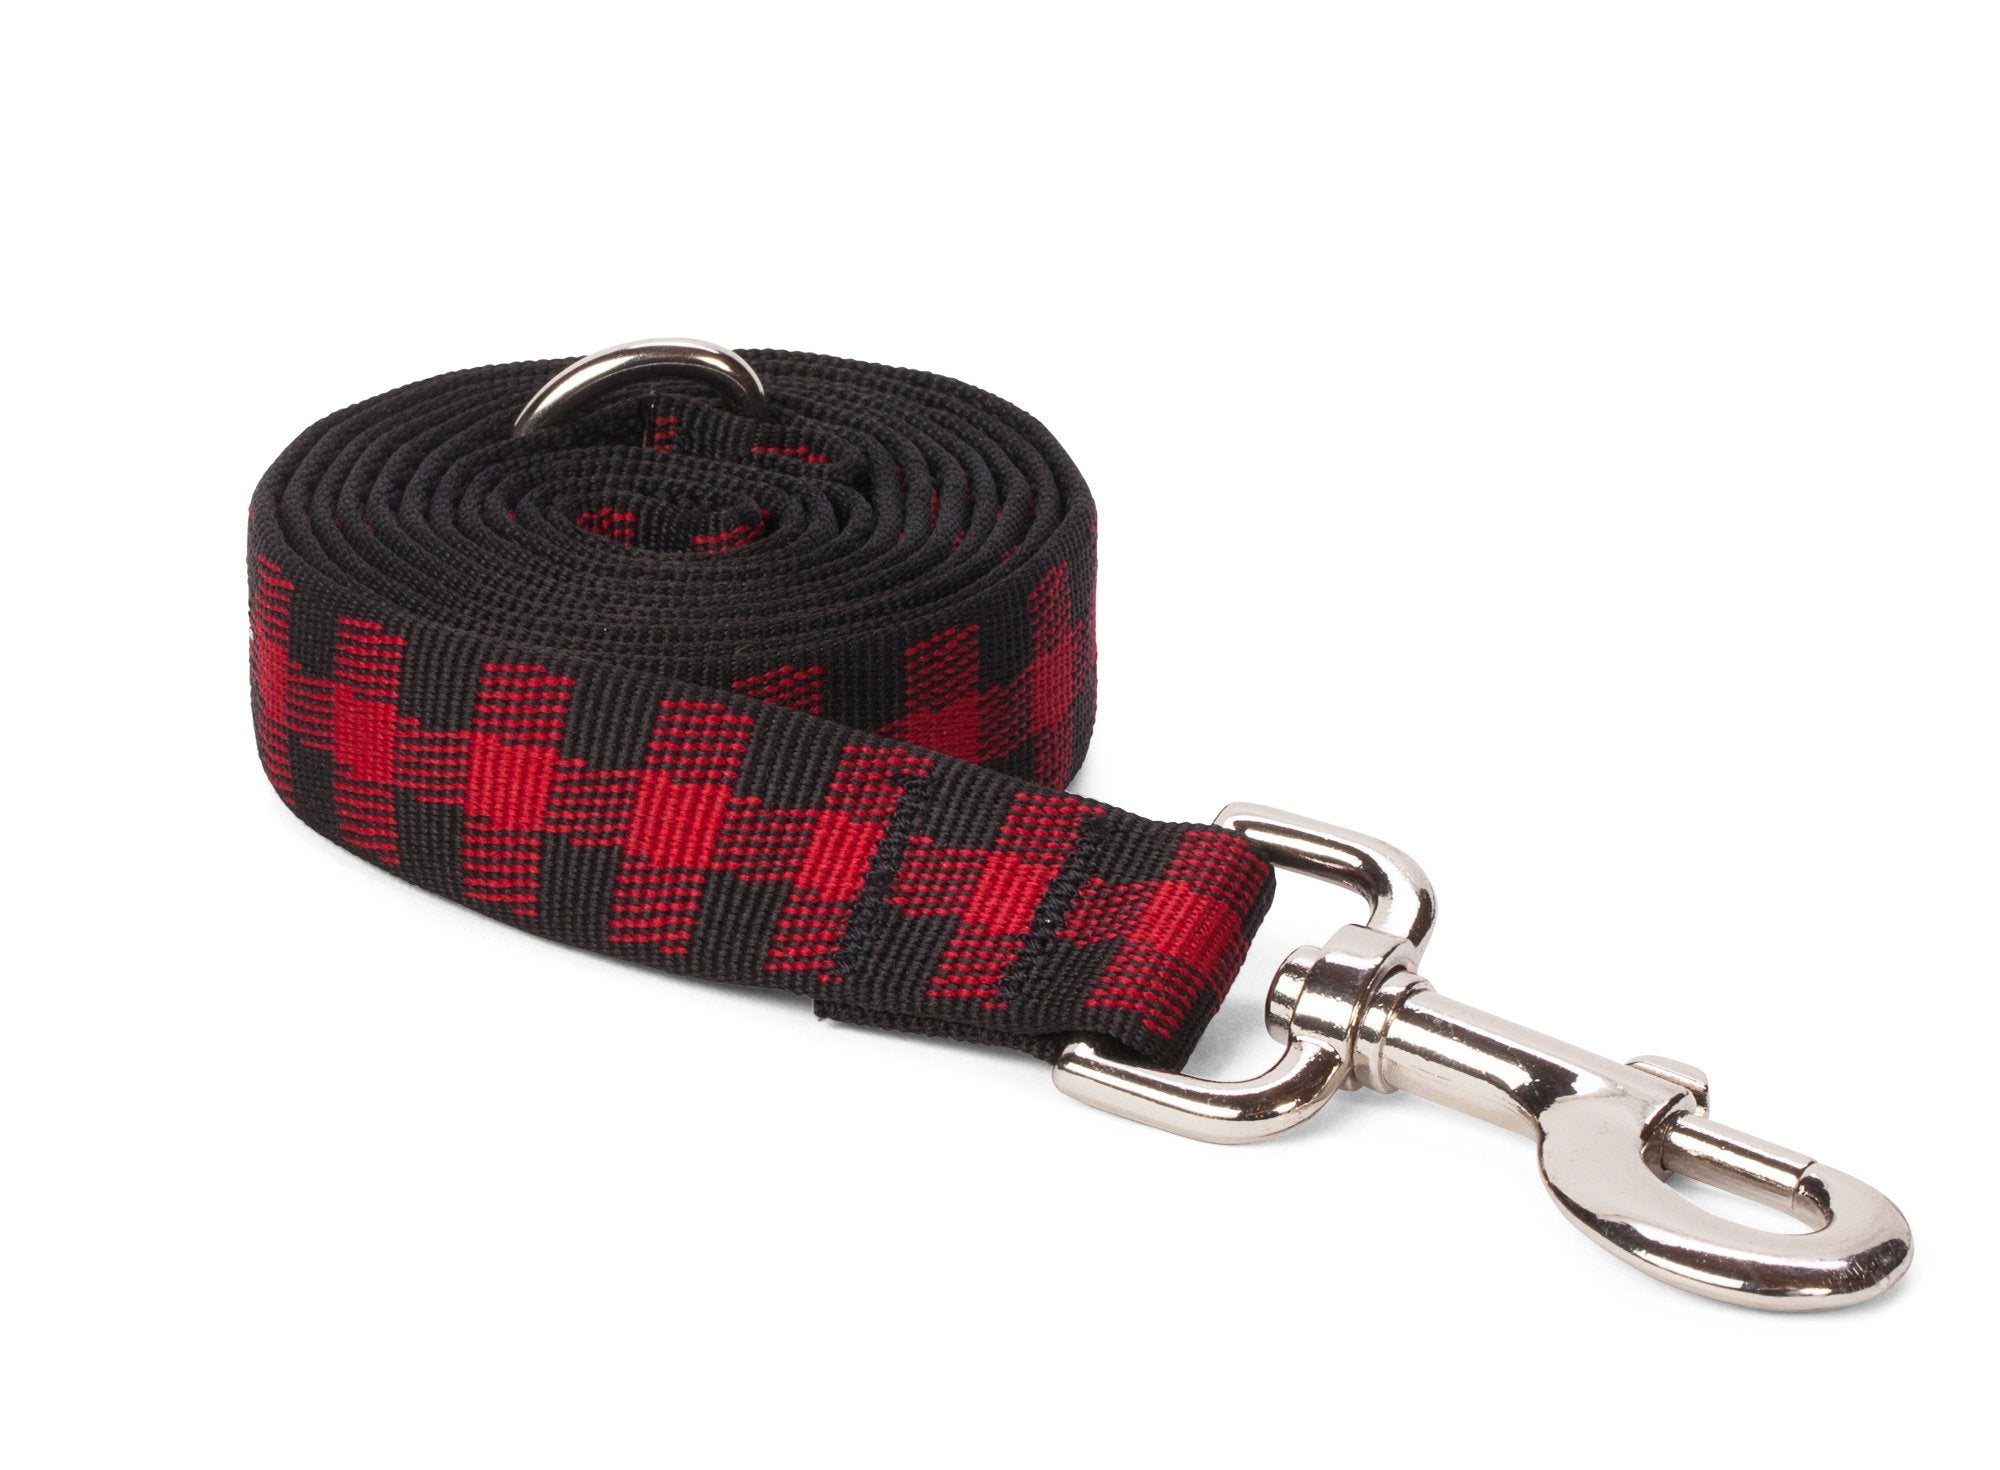 Doggie Trends Nyc Red and Black Check Dog Leash